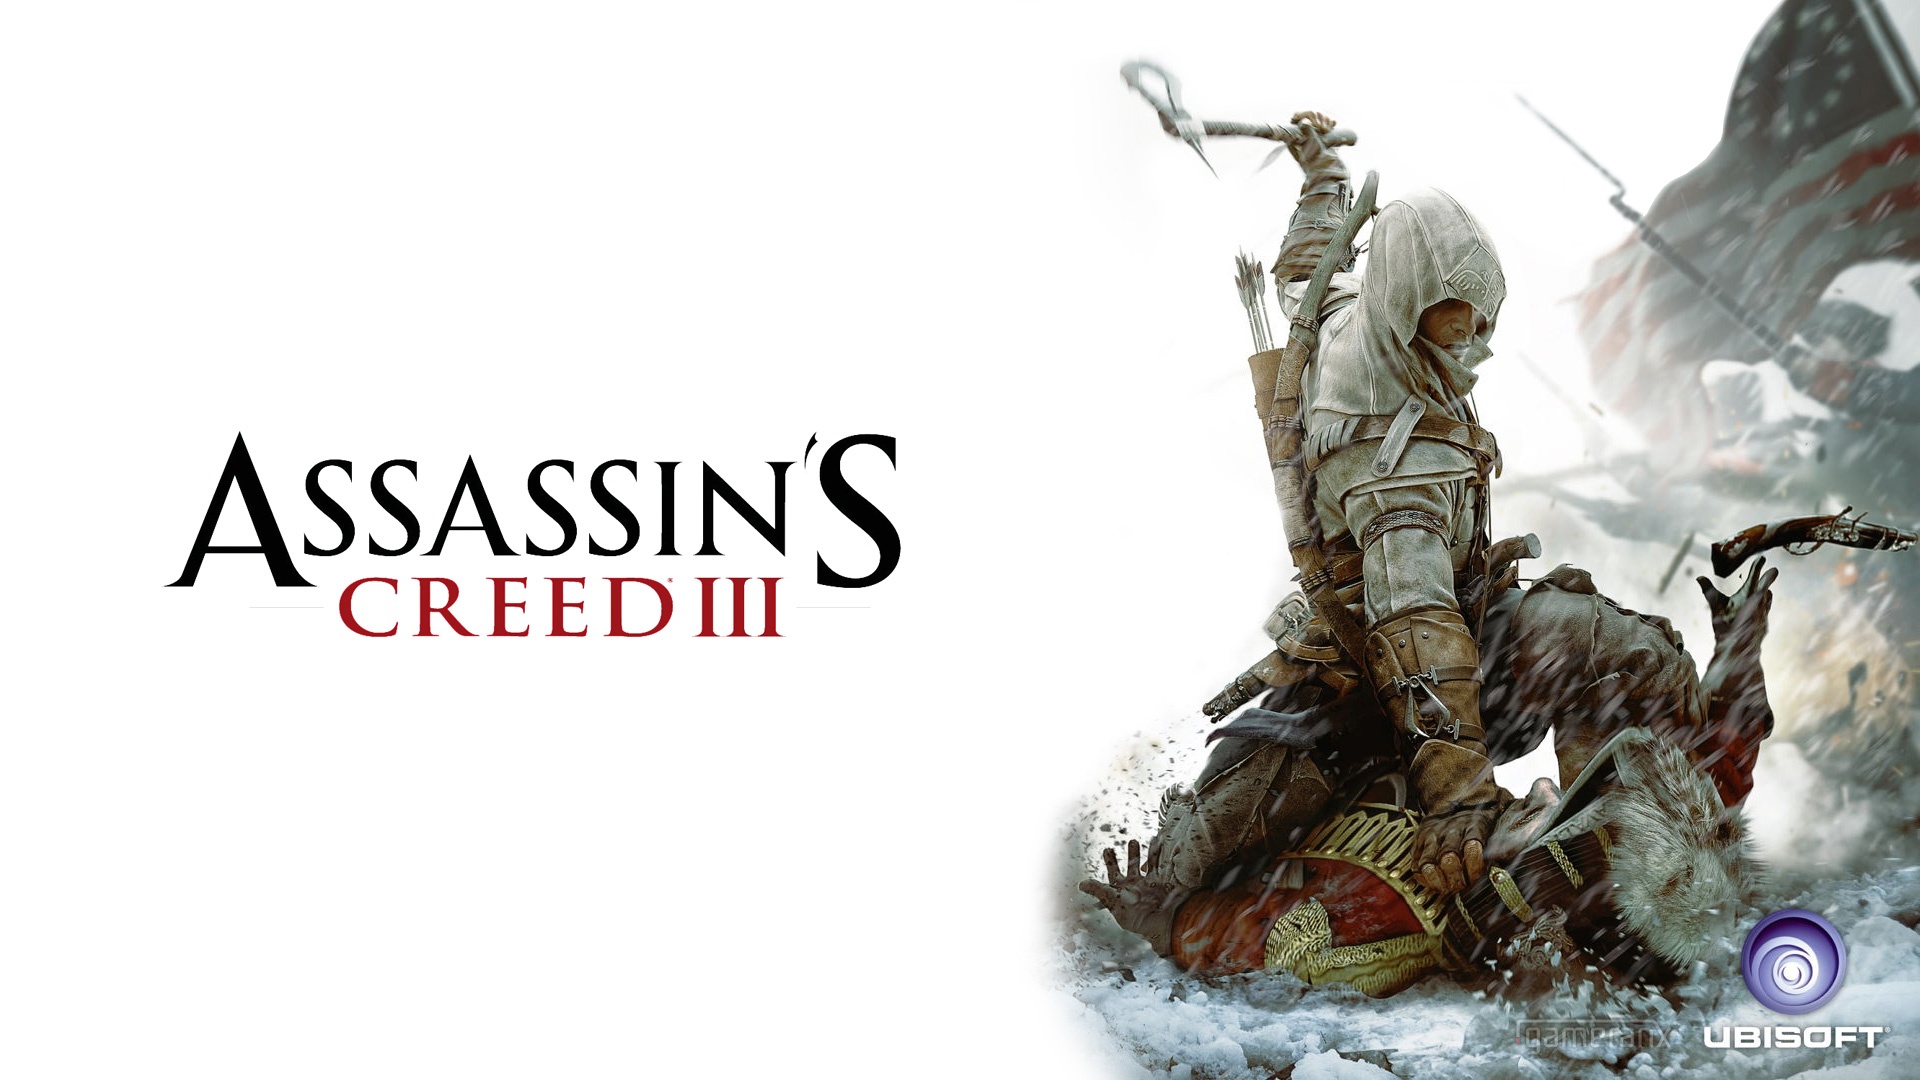 Assassins Creed 3 Wallpapers in HD Page 1 1920x1080